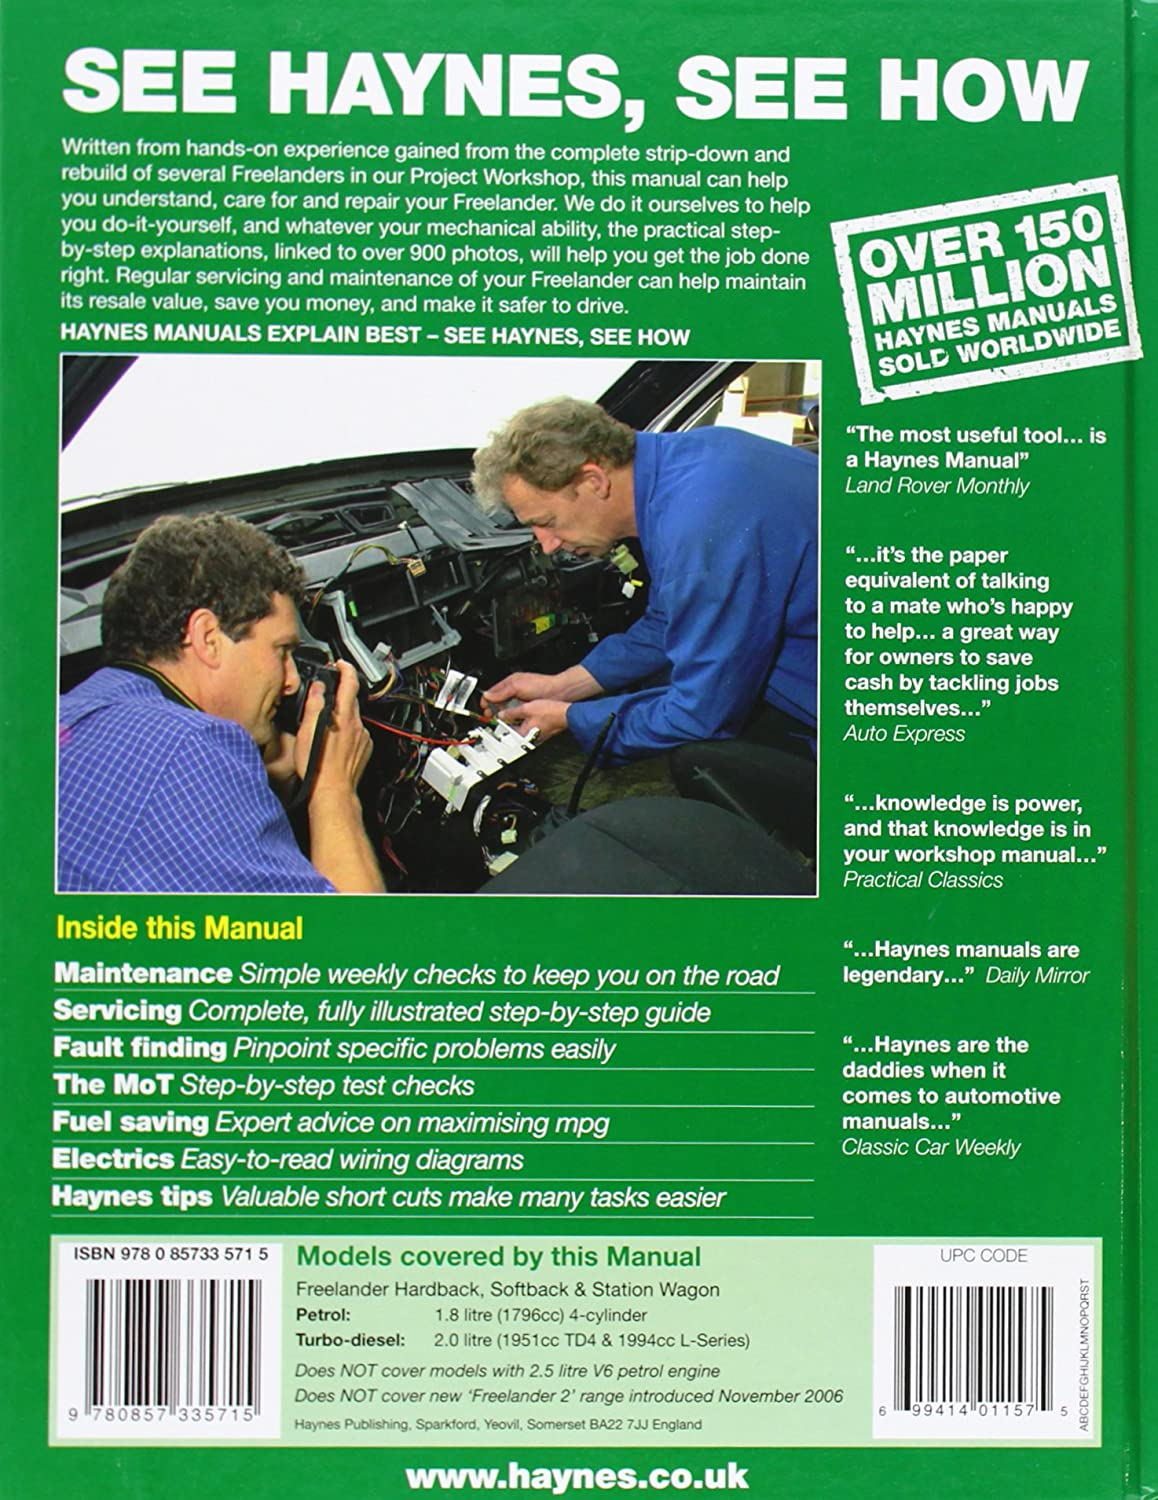 Amazon.com: Land Rover Freelander Service and Repair Manual: 1997-2006  (Haynes Service and Repair Manuals): Health & Personal Care